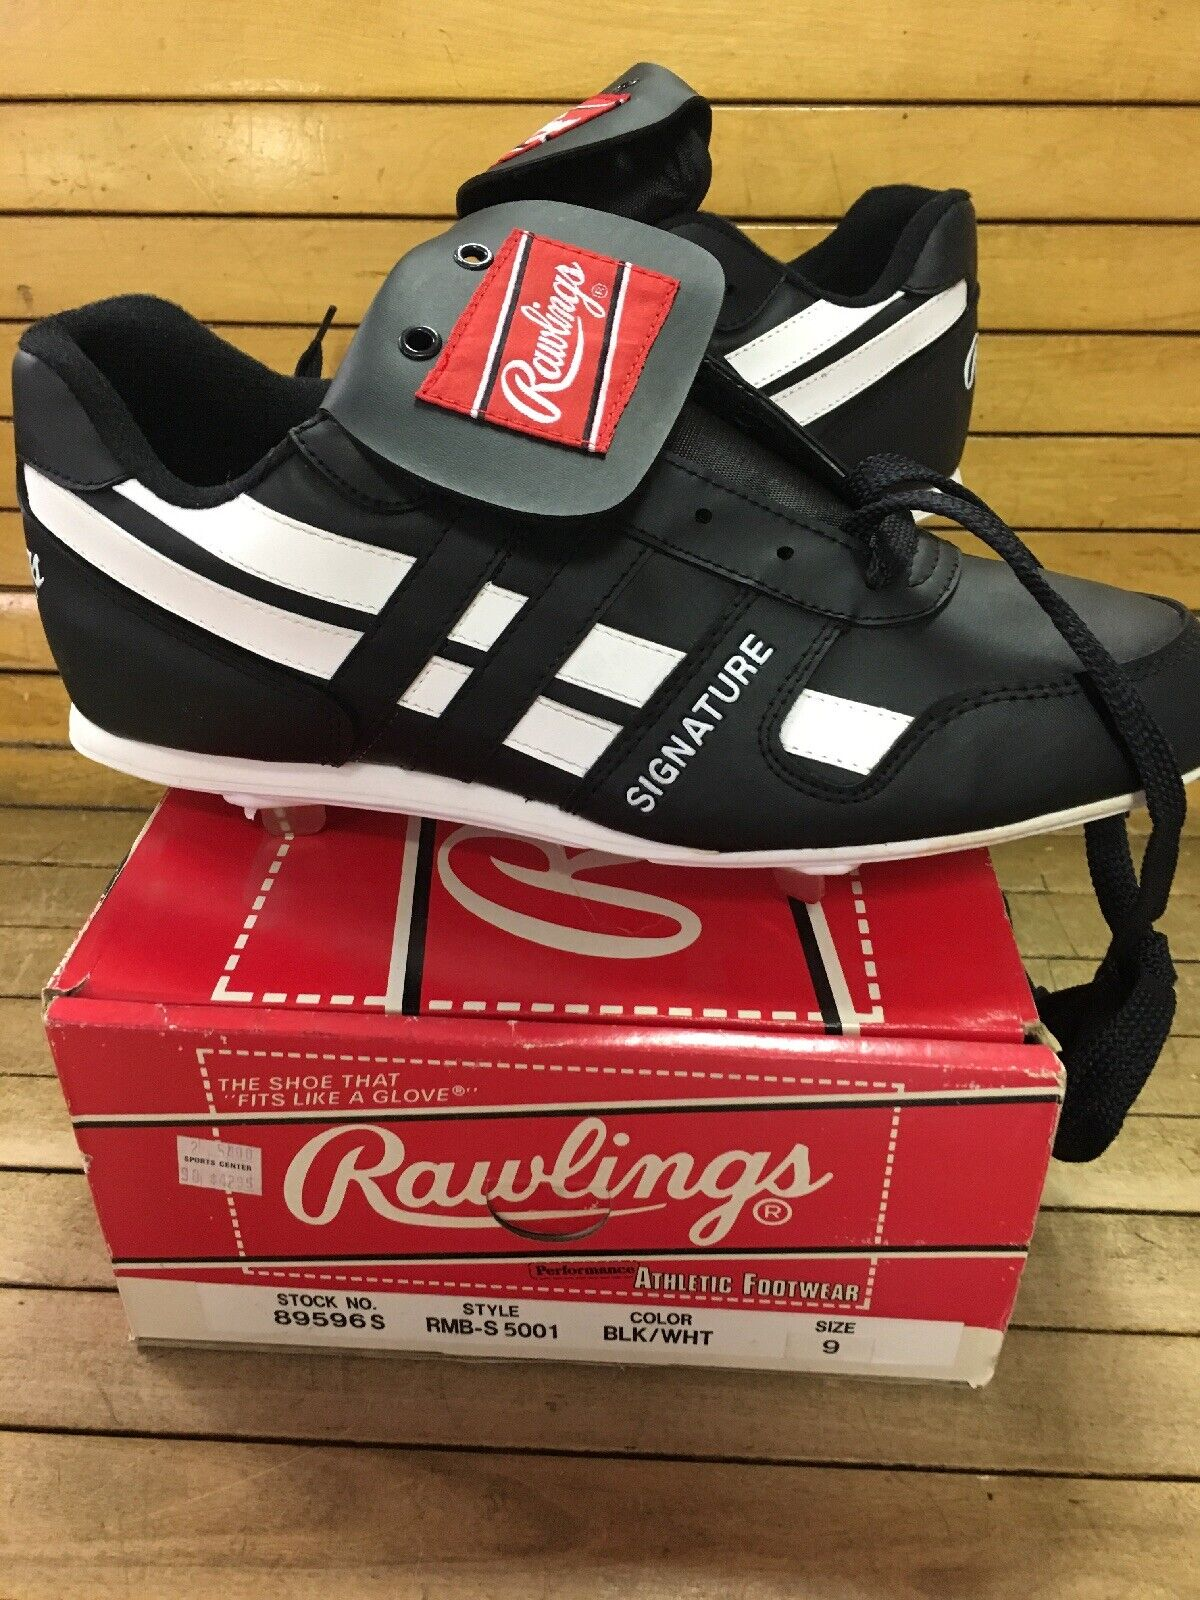 Vintage 80s 90s Rawlings Baseball Cleat schuhe Größe 9 Rare Signature Cleat